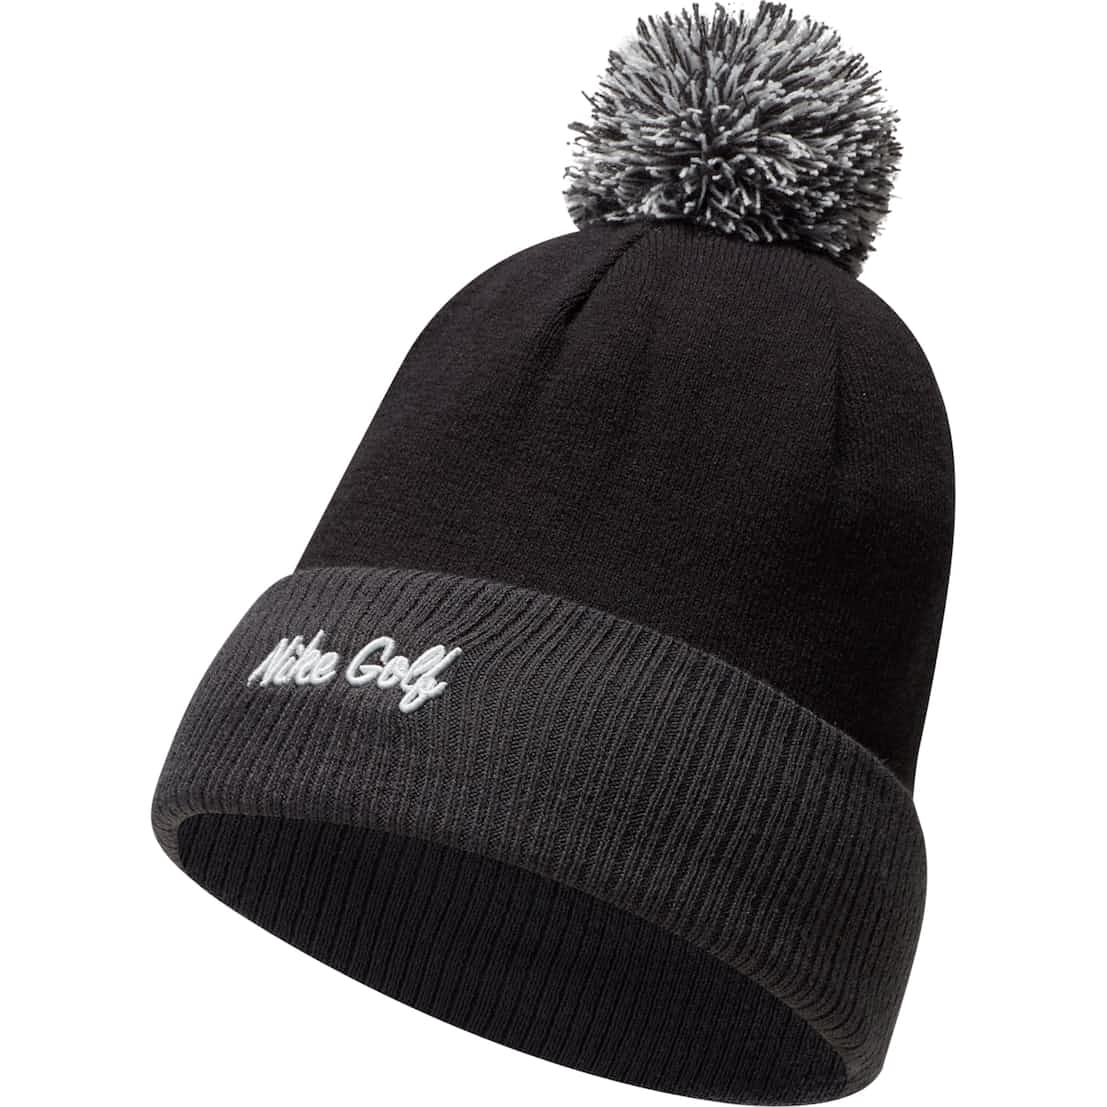 Statement Beanie Black - AW20